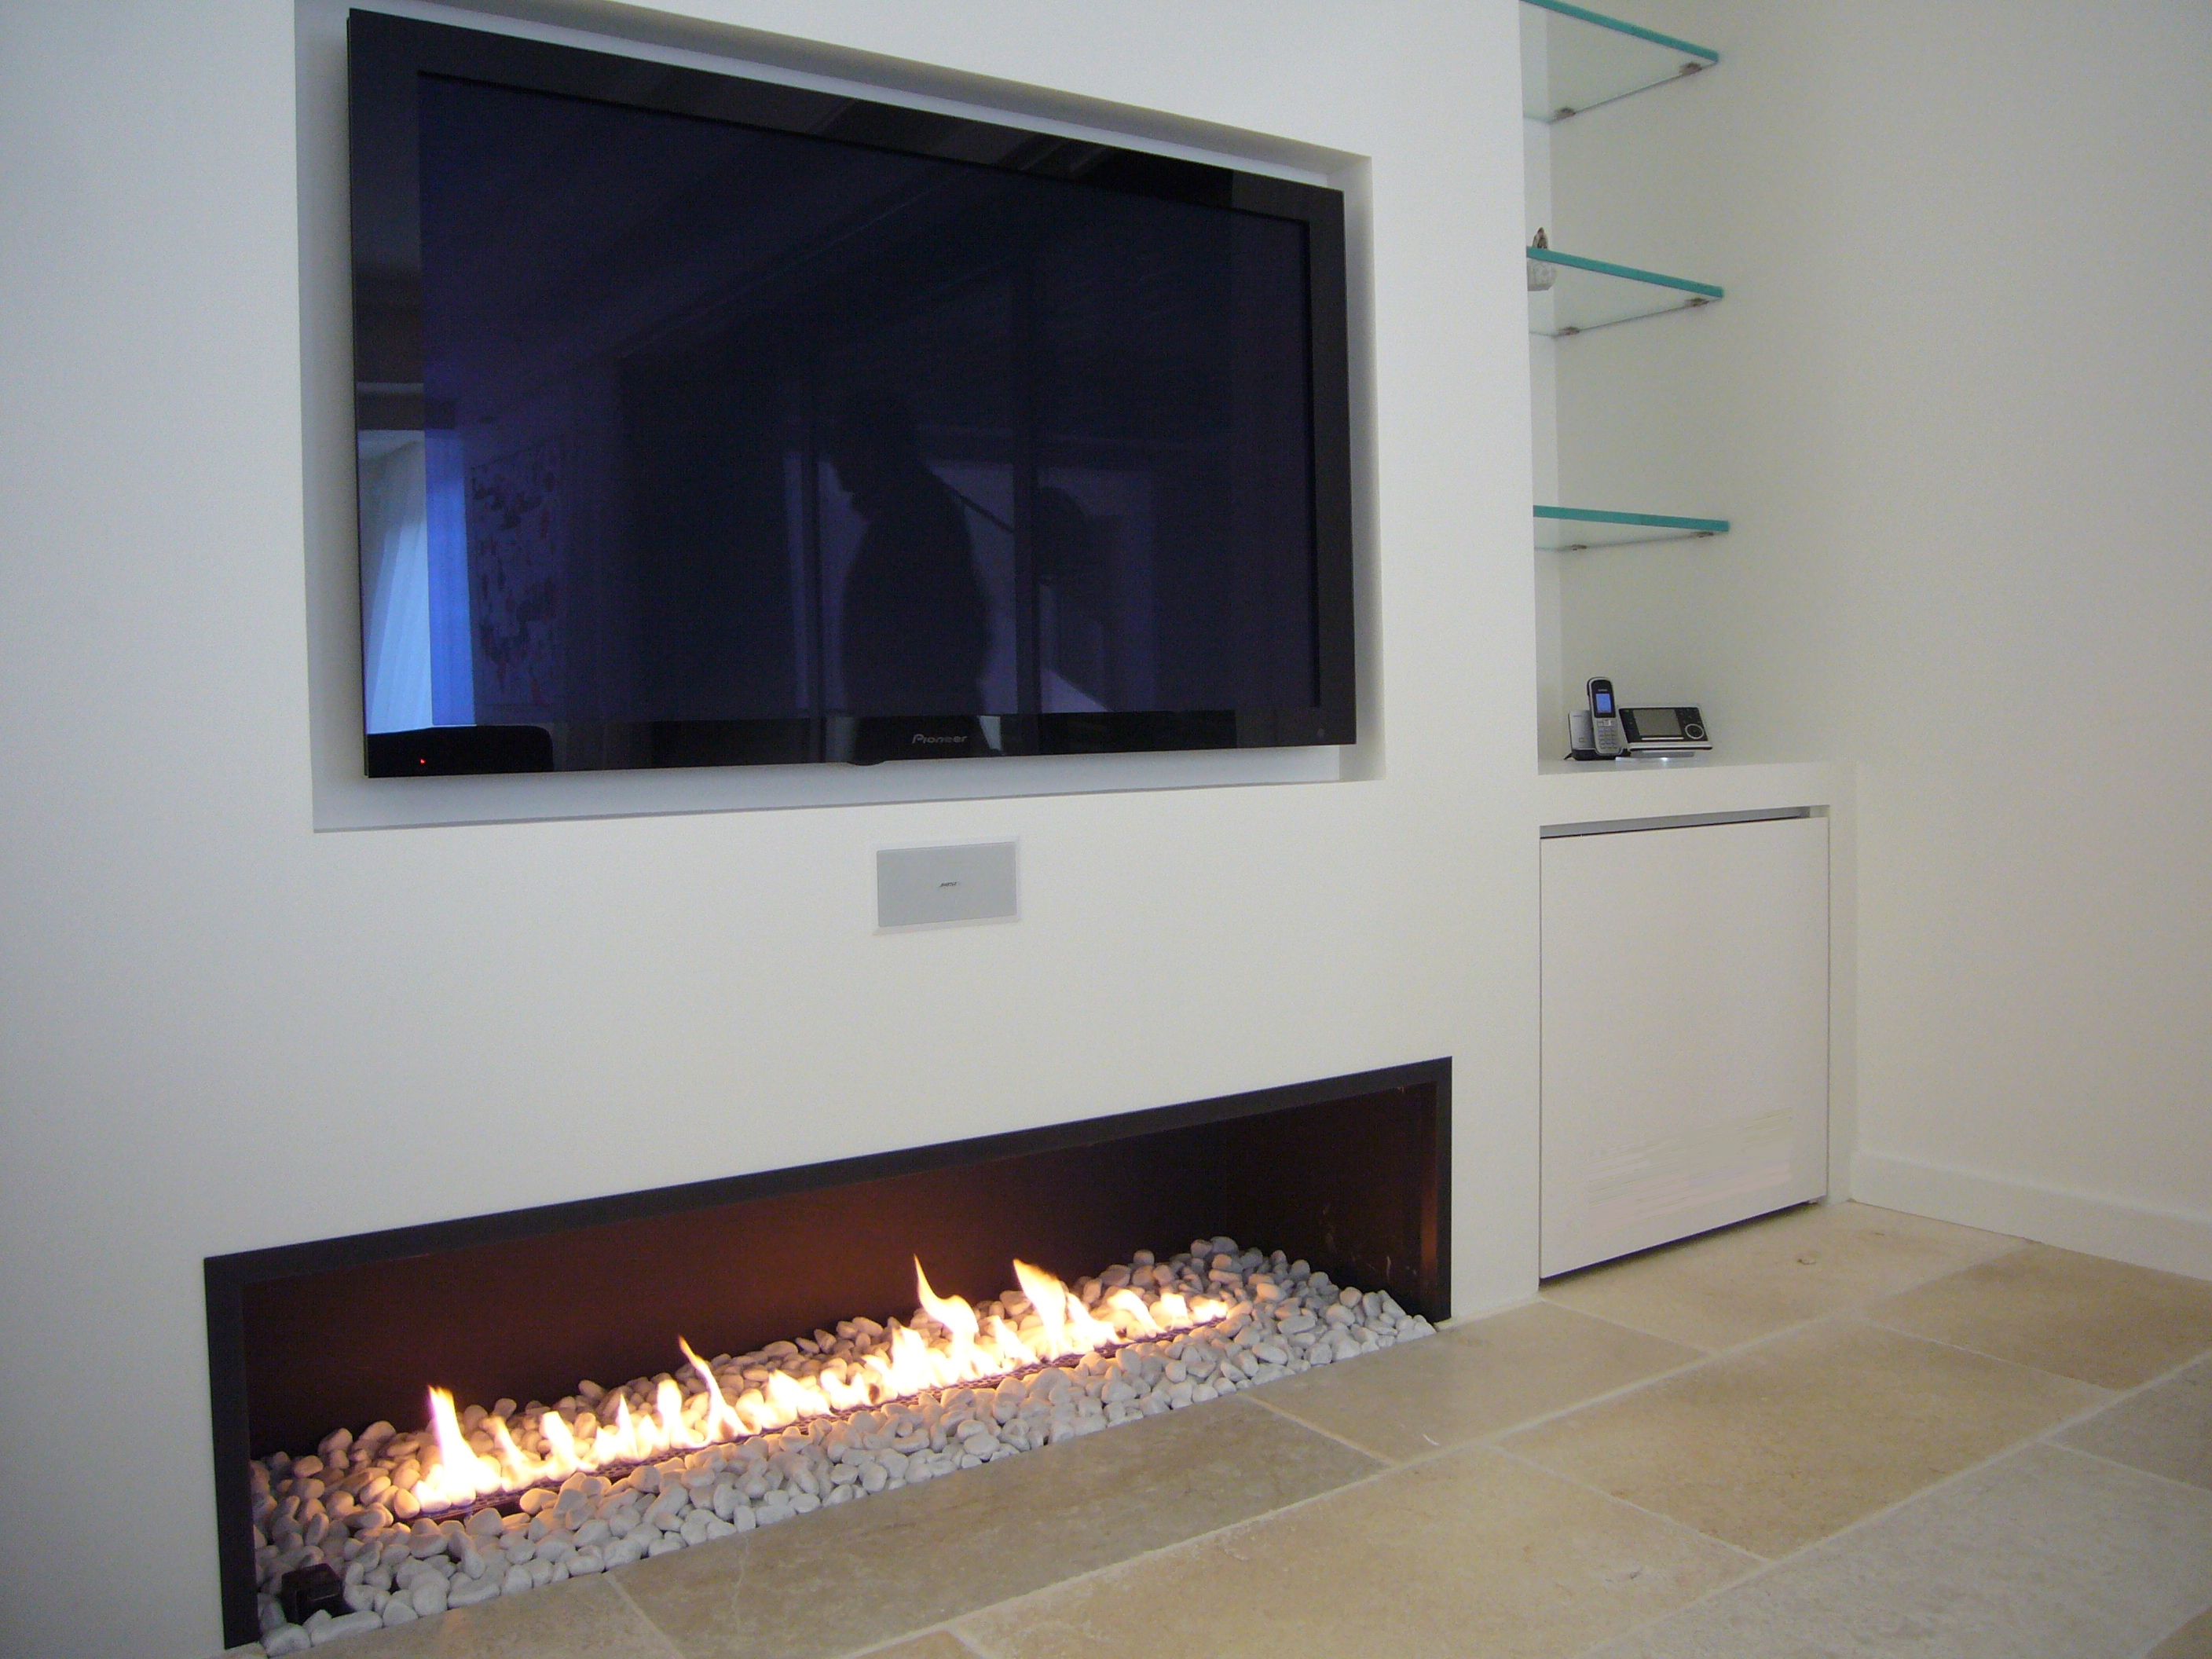 Cheminees Moderne Modern Fireplace Cheminée Moderne Bloch Design Archinect